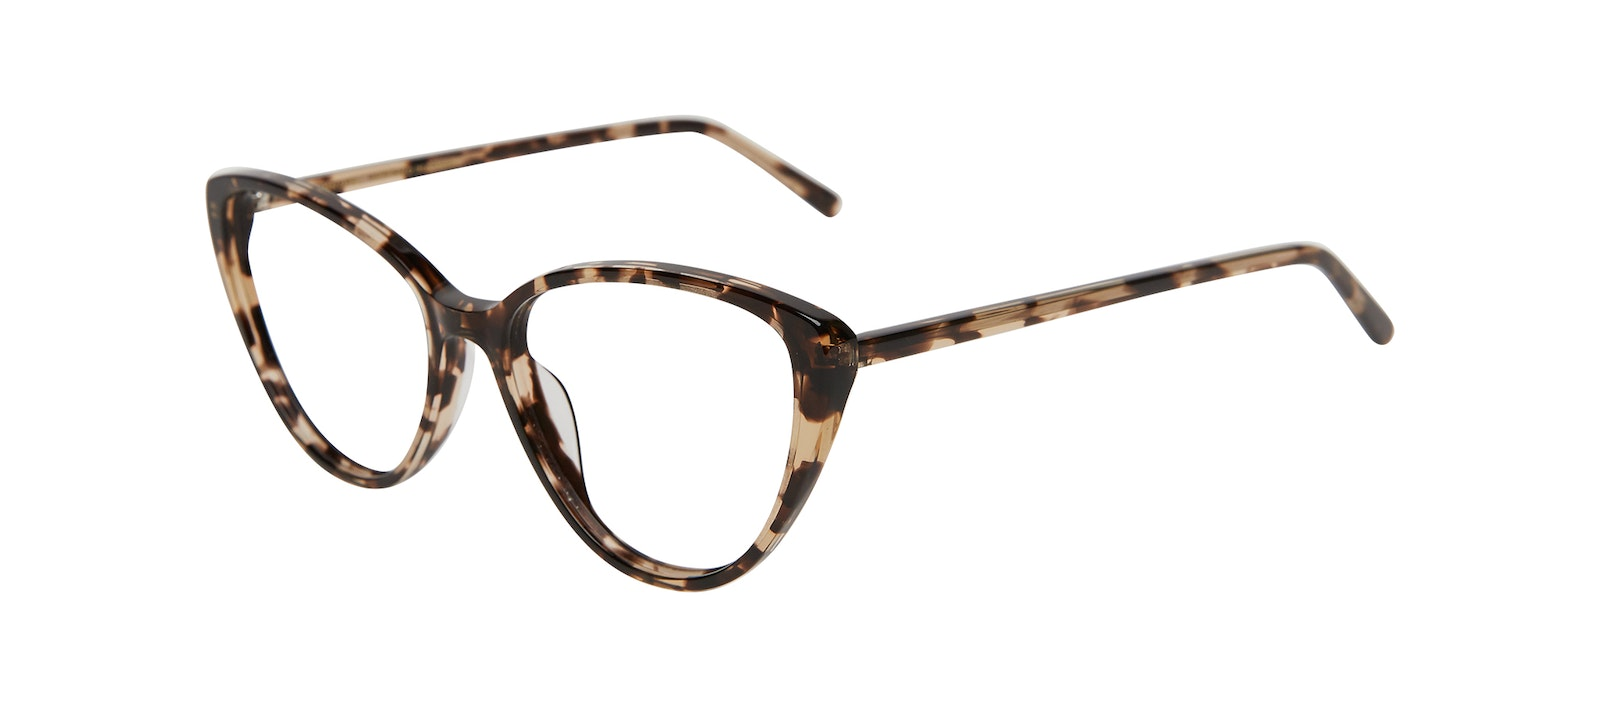 Affordable Fashion Glasses Cat Eye Eyeglasses Women Poise Leopard Tilt